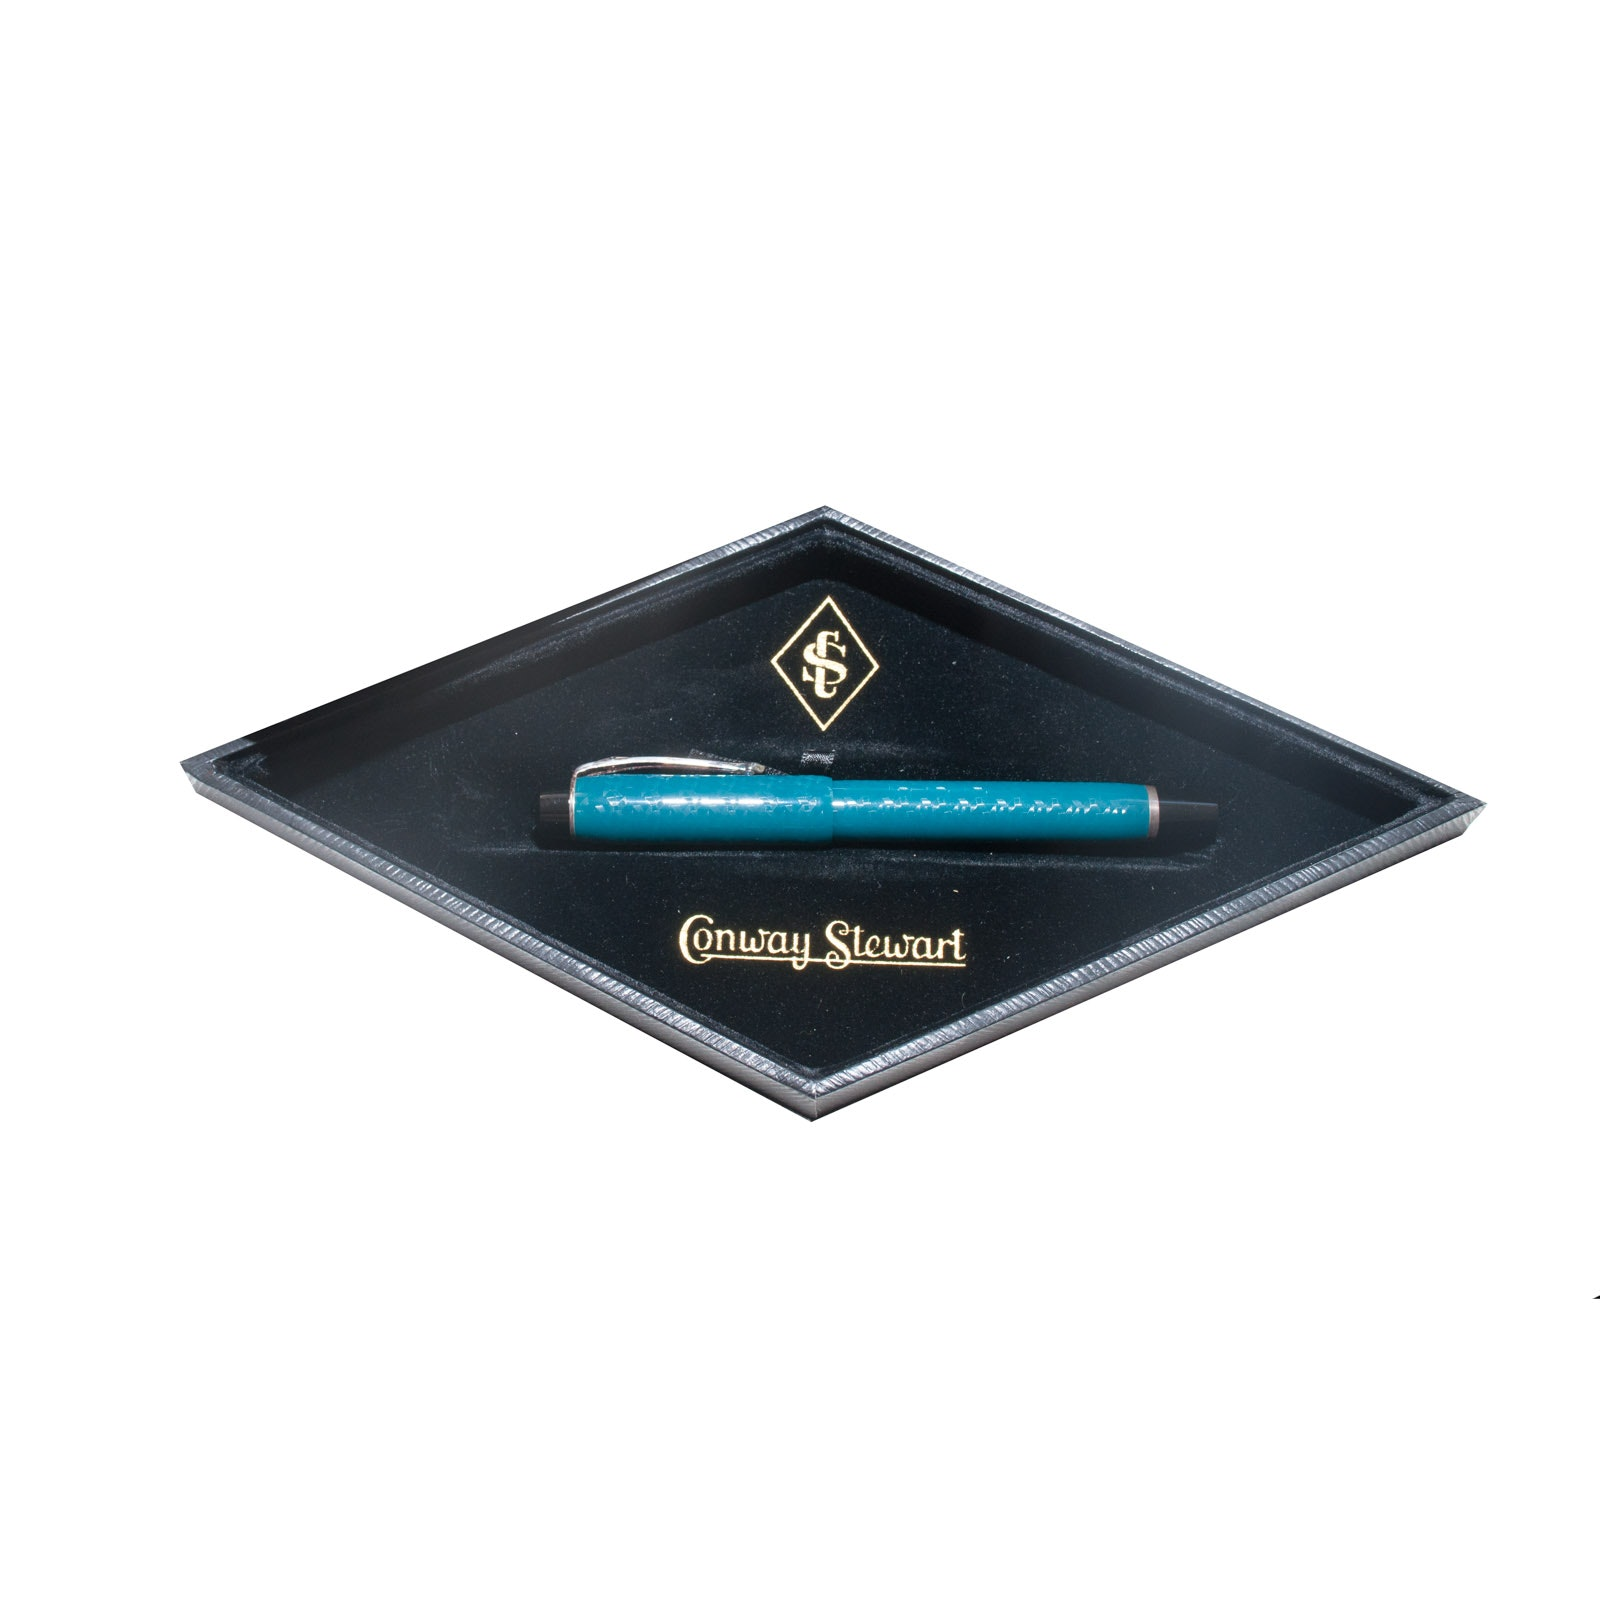 Conway Stewart Nelson Heritage Rollerball Pen, Limited Edition